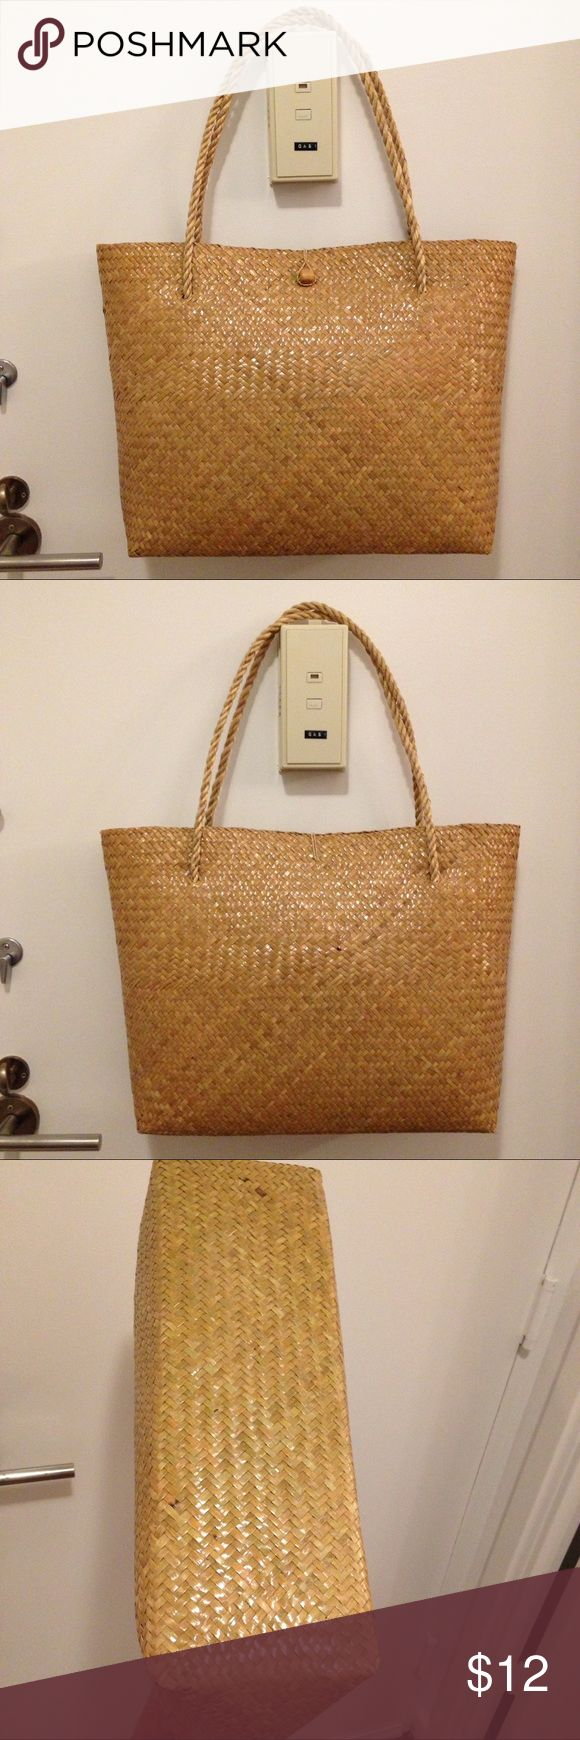 """Straw bag tote handmade France Handmade. Brand new. Minimal wears from storage around corners. Size 13"""" x 19"""" x 5"""" Unbranded. Bag is bought from local market south of France. Not j crew. List j crew for exposure. J. Crew Bags"""